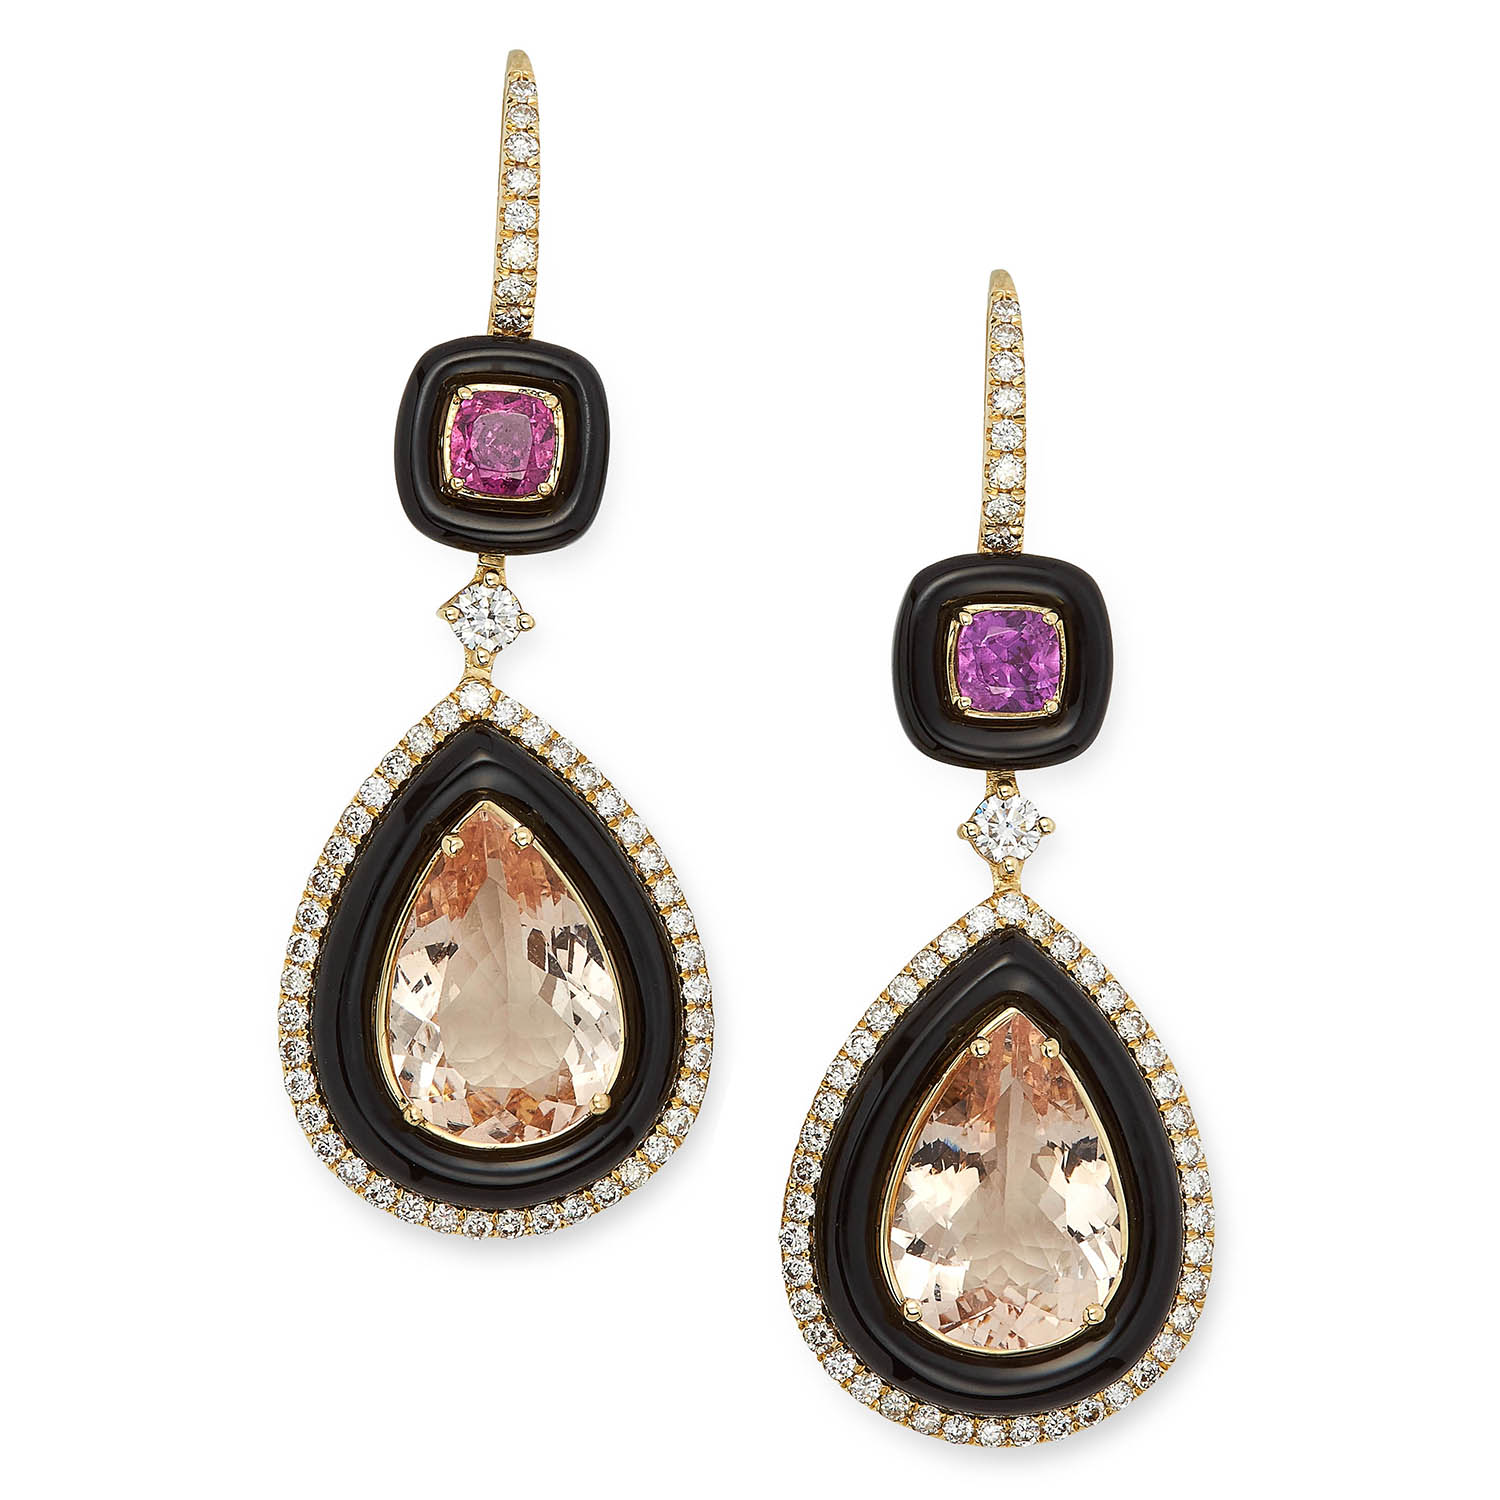 MORGANITE, ONYX AND DIAMOND DROP EARRINGS each set with a pear cut morganite in a border of polished